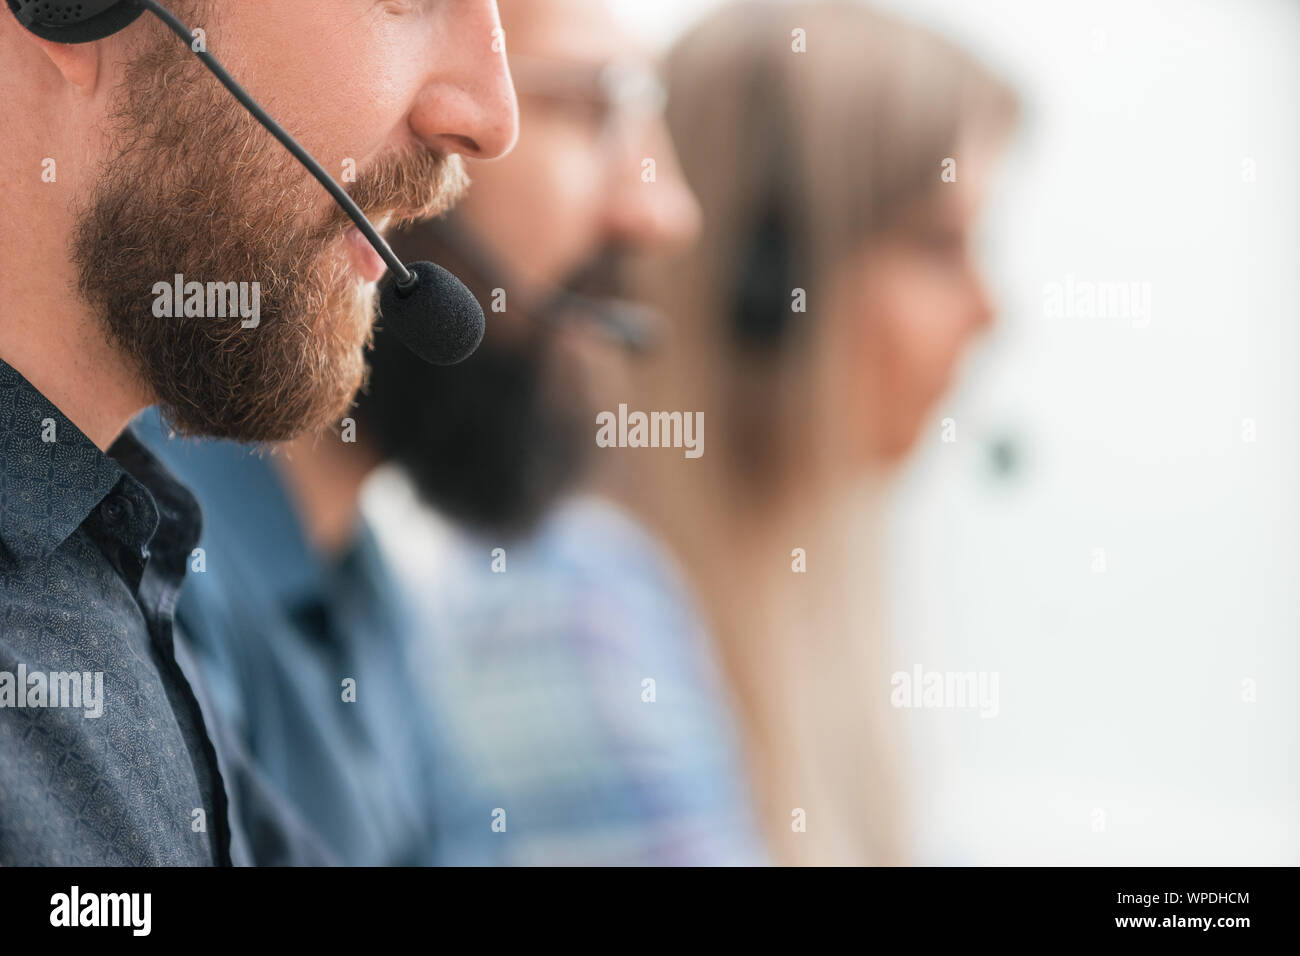 close up. professional call center employee in the workplace. Stock Photo